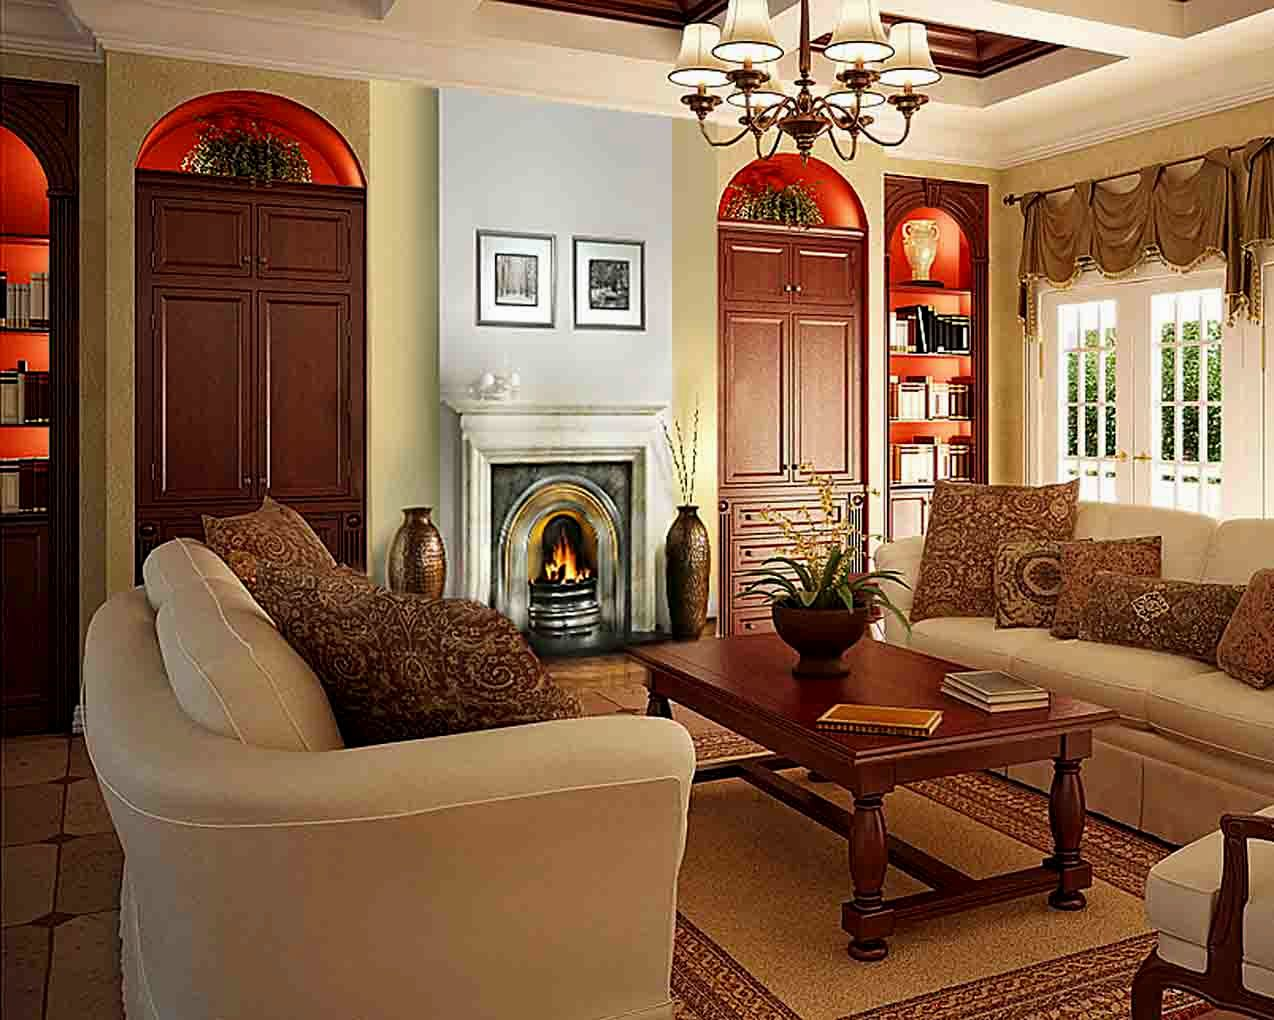 stunning cream colored sofa layout-Cool Cream Colored sofa Image